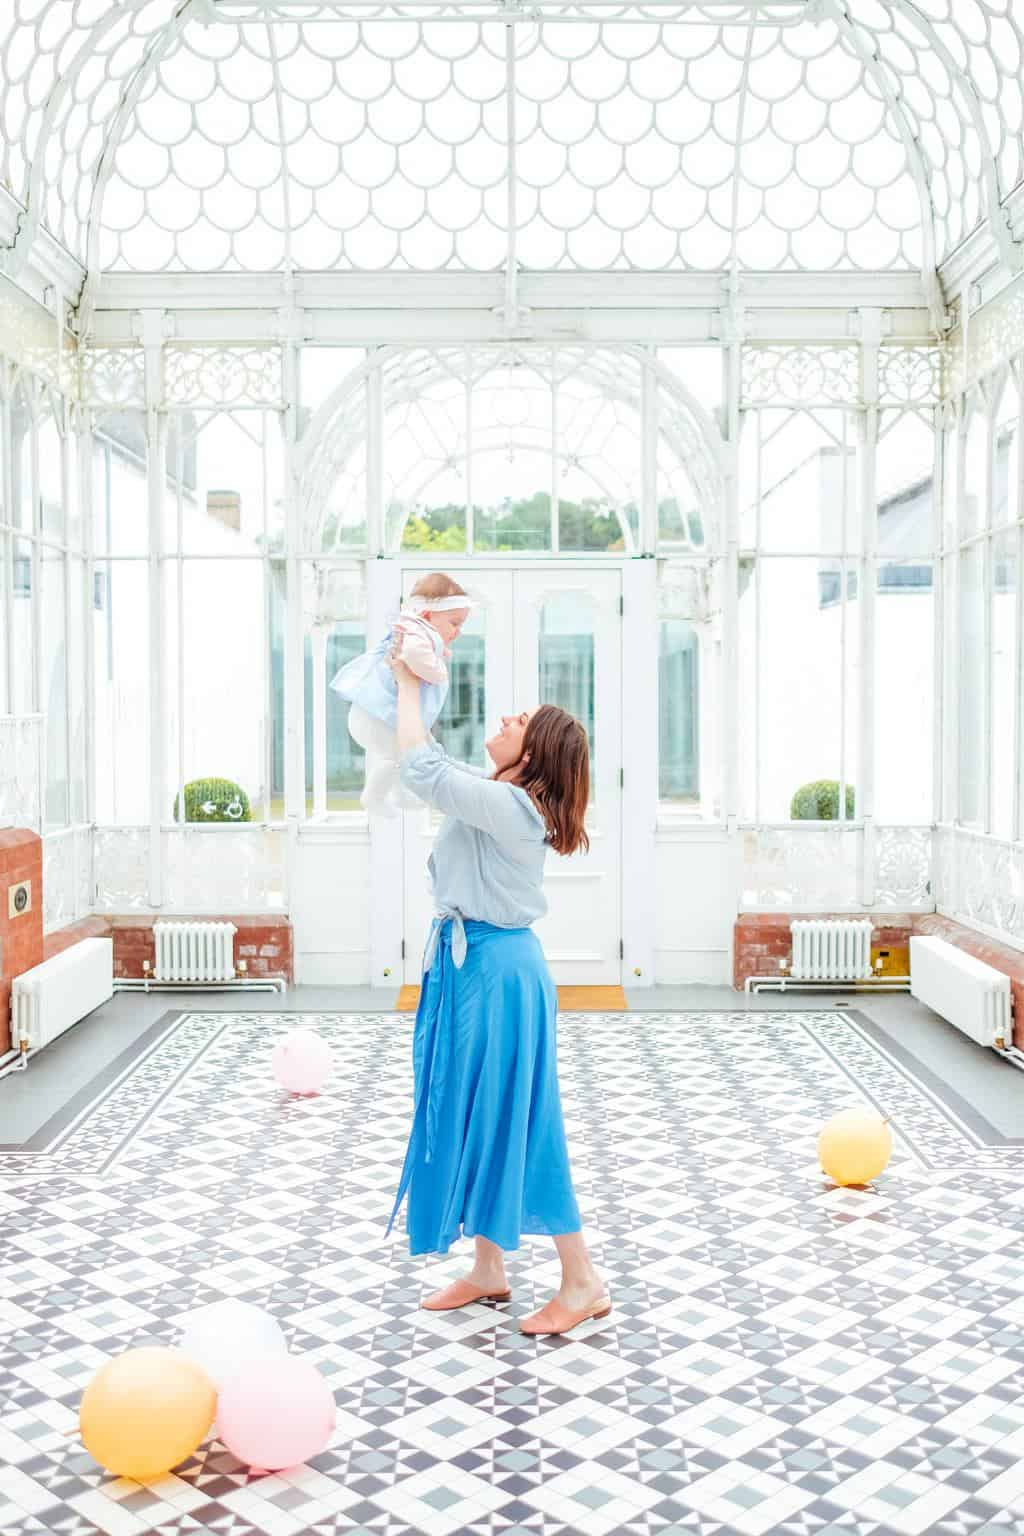 Mommy and Me photo at Horniman Gardens! Photos of Our British Isles Cruise with Family! | Part 1 # travel #familytravel #cruise #decor #design #britishisles